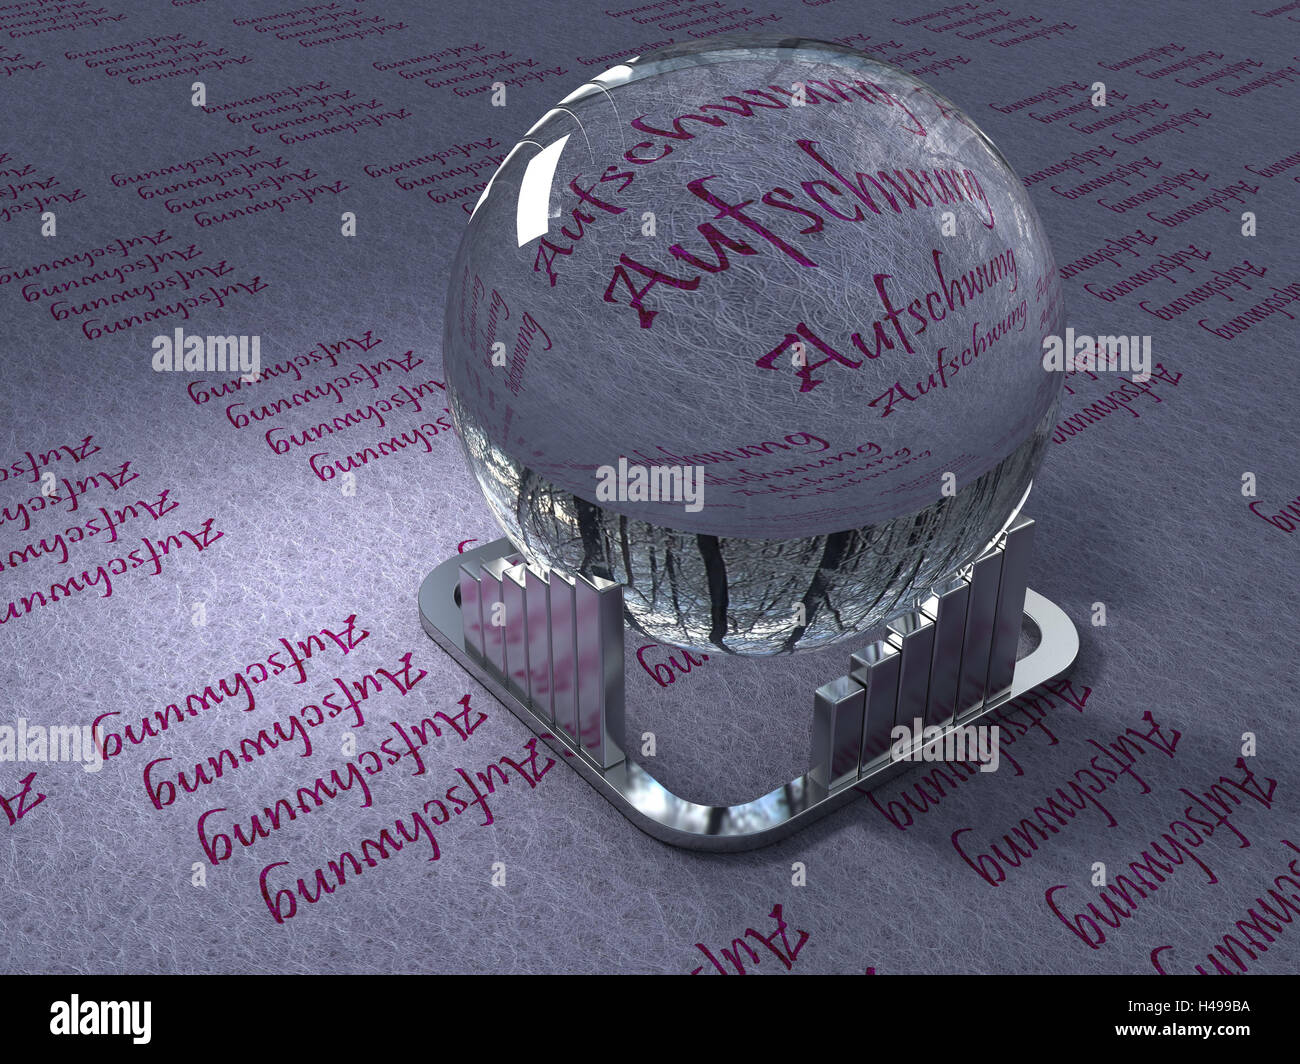 Crystal ball, impetus, computer graphics, glass ball, sphere, boom, words, economic situation, upward trend, 3D, - Stock Image